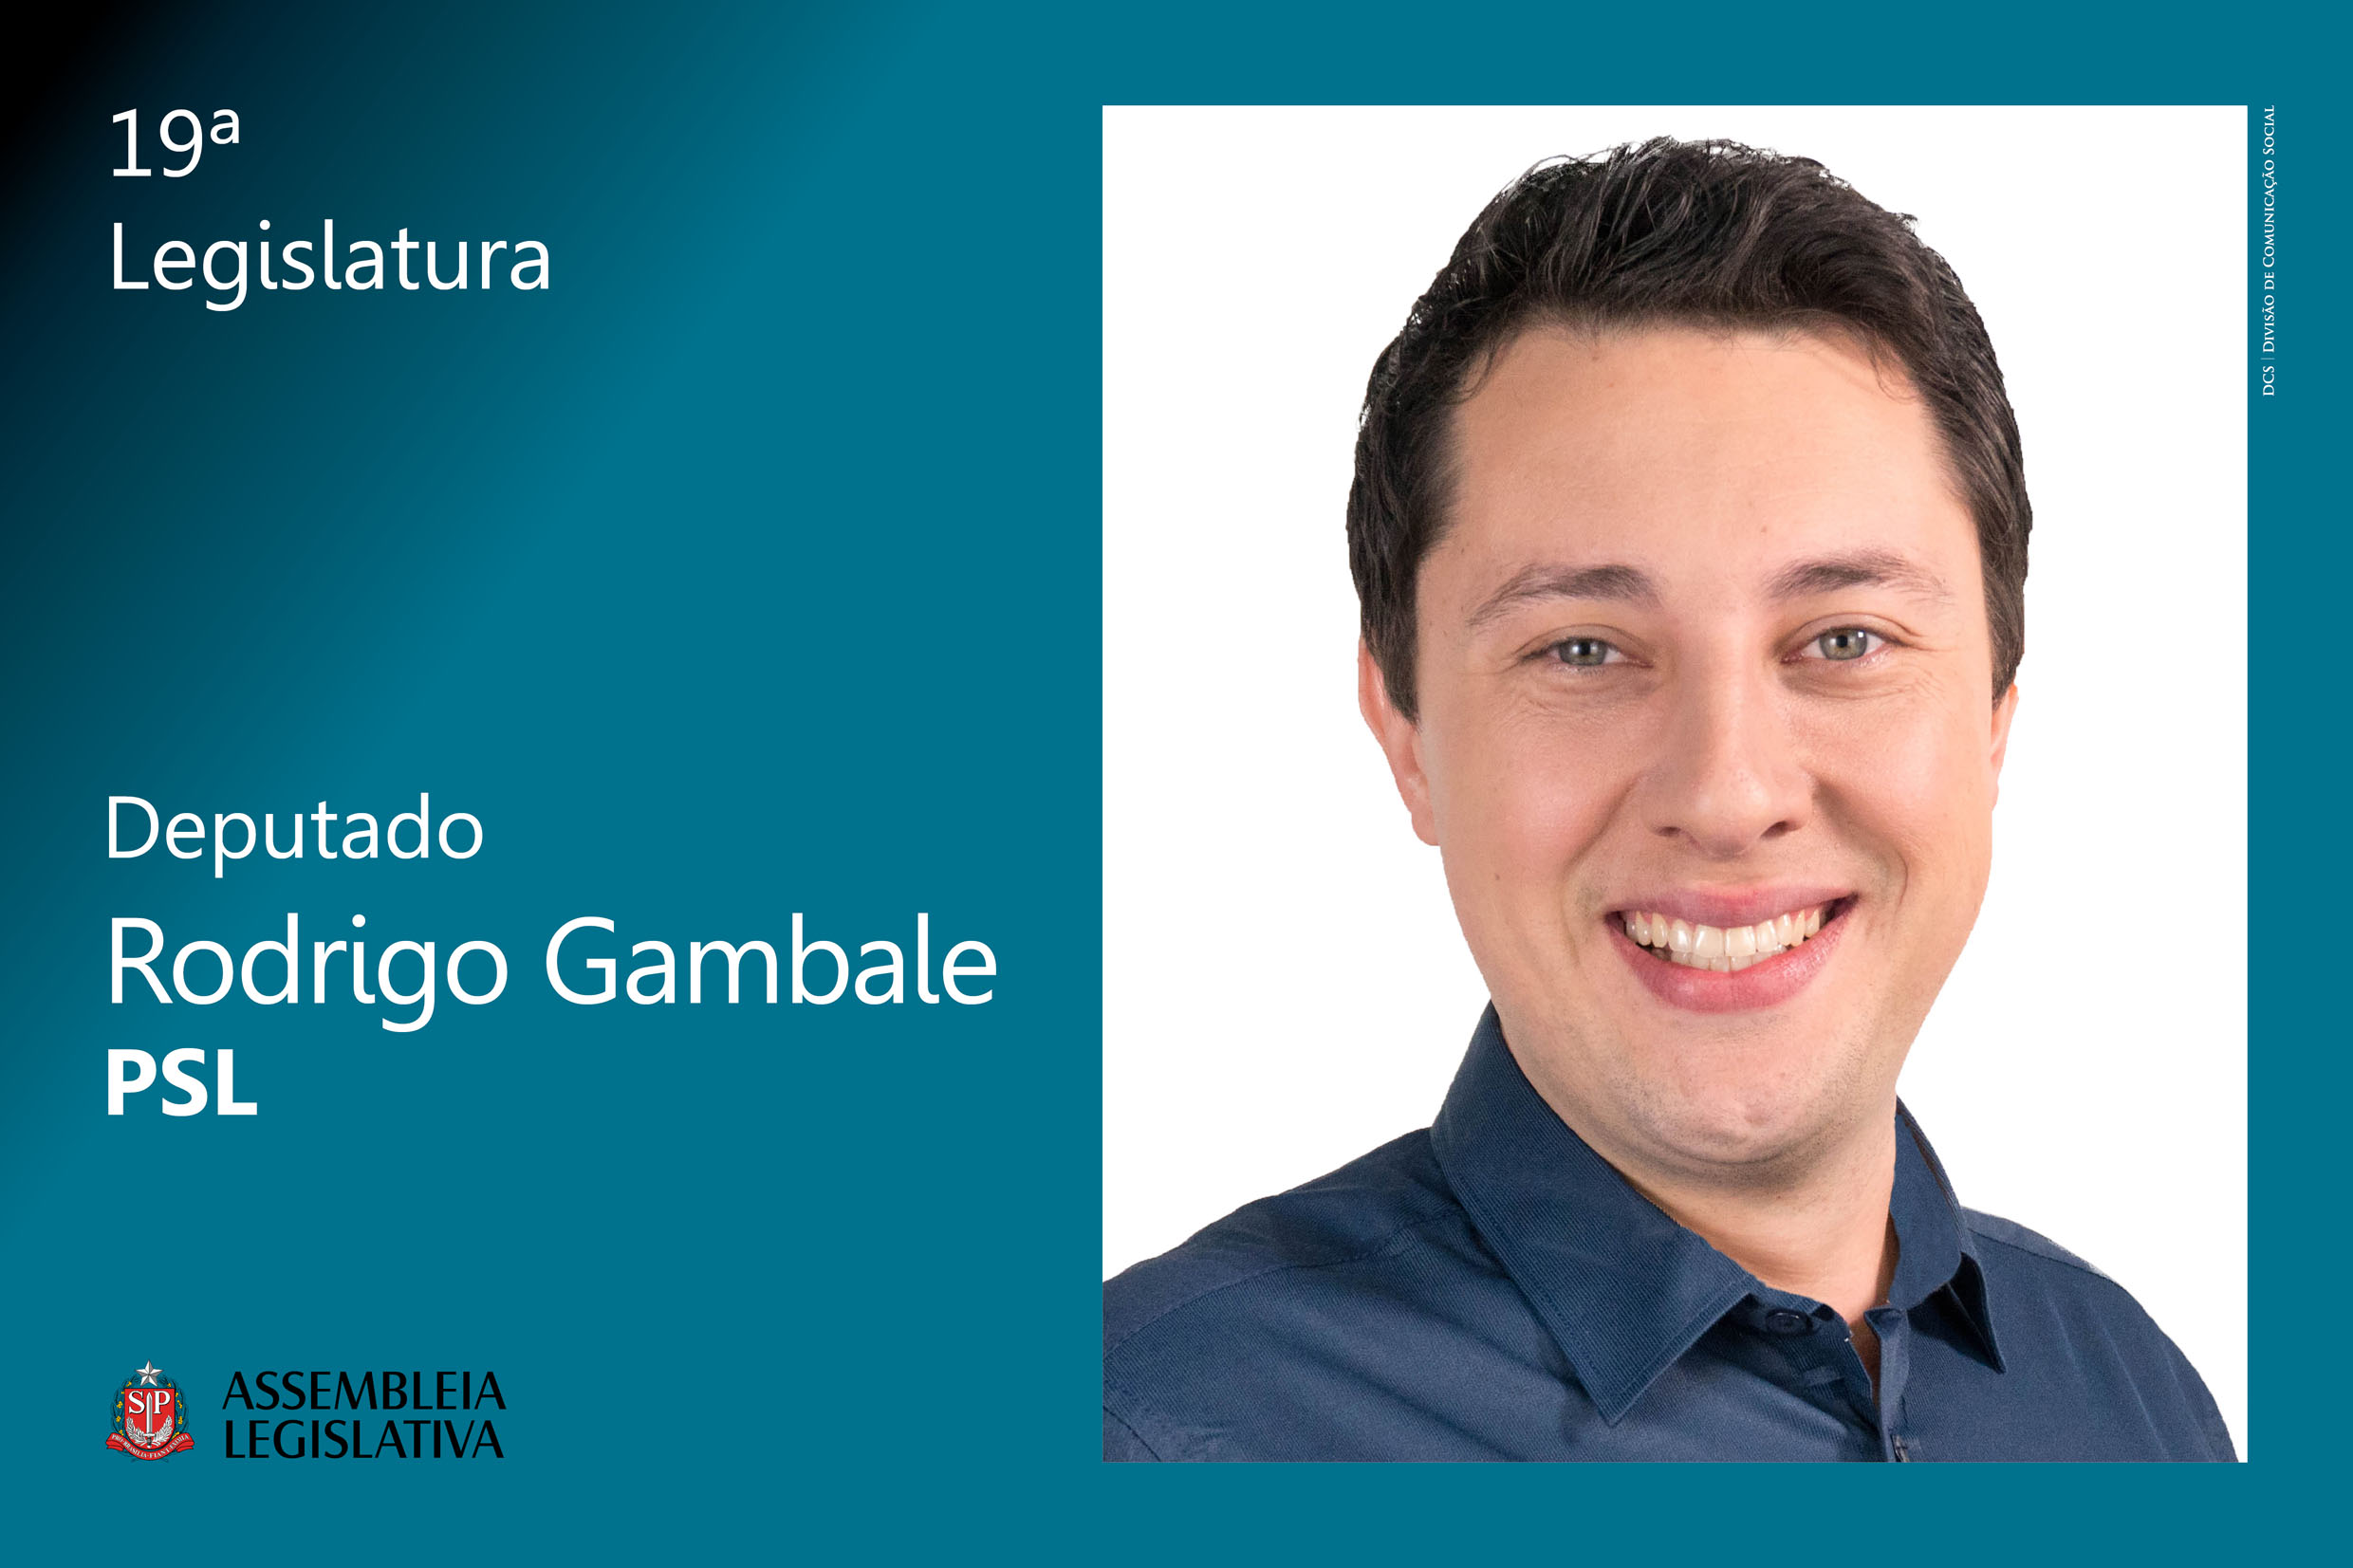 Rodrigo Gambale (PSL)<a style='float:right' href='https://www3.al.sp.gov.br/repositorio/noticia/N-03-2019/fg231265.jpg' target=_blank><img src='/_img/material-file-download-white.png' width='14px' alt='Clique para baixar a imagem'></a>